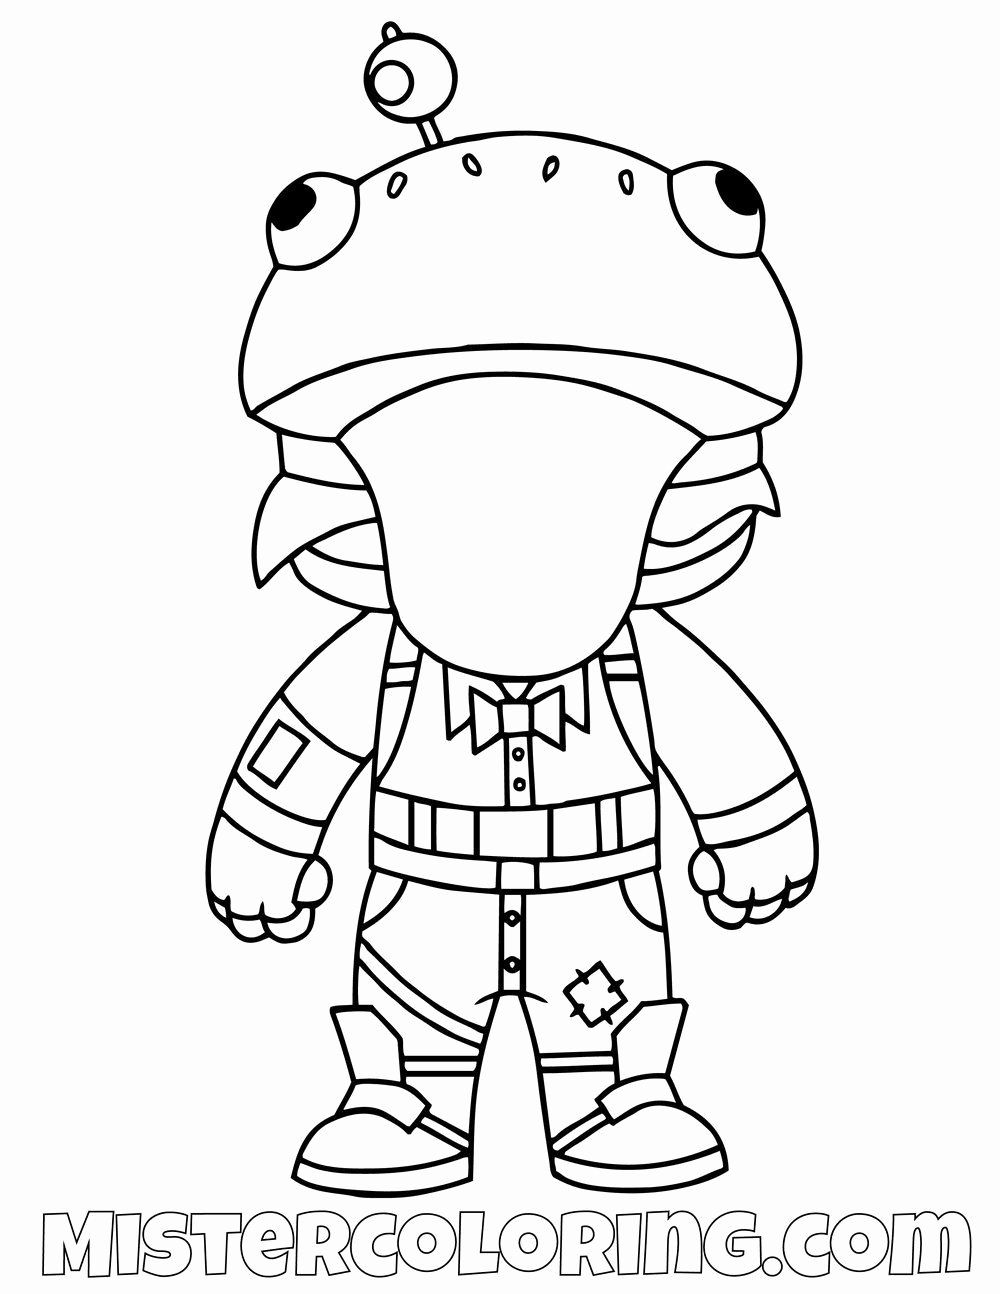 Chibi Animal Coloring Pages Awesome Free Durr Burger Chibi Skin Fortnite Coloring Page For Kids Animal Coloring Pages Coloring Books Cool Coloring Pages